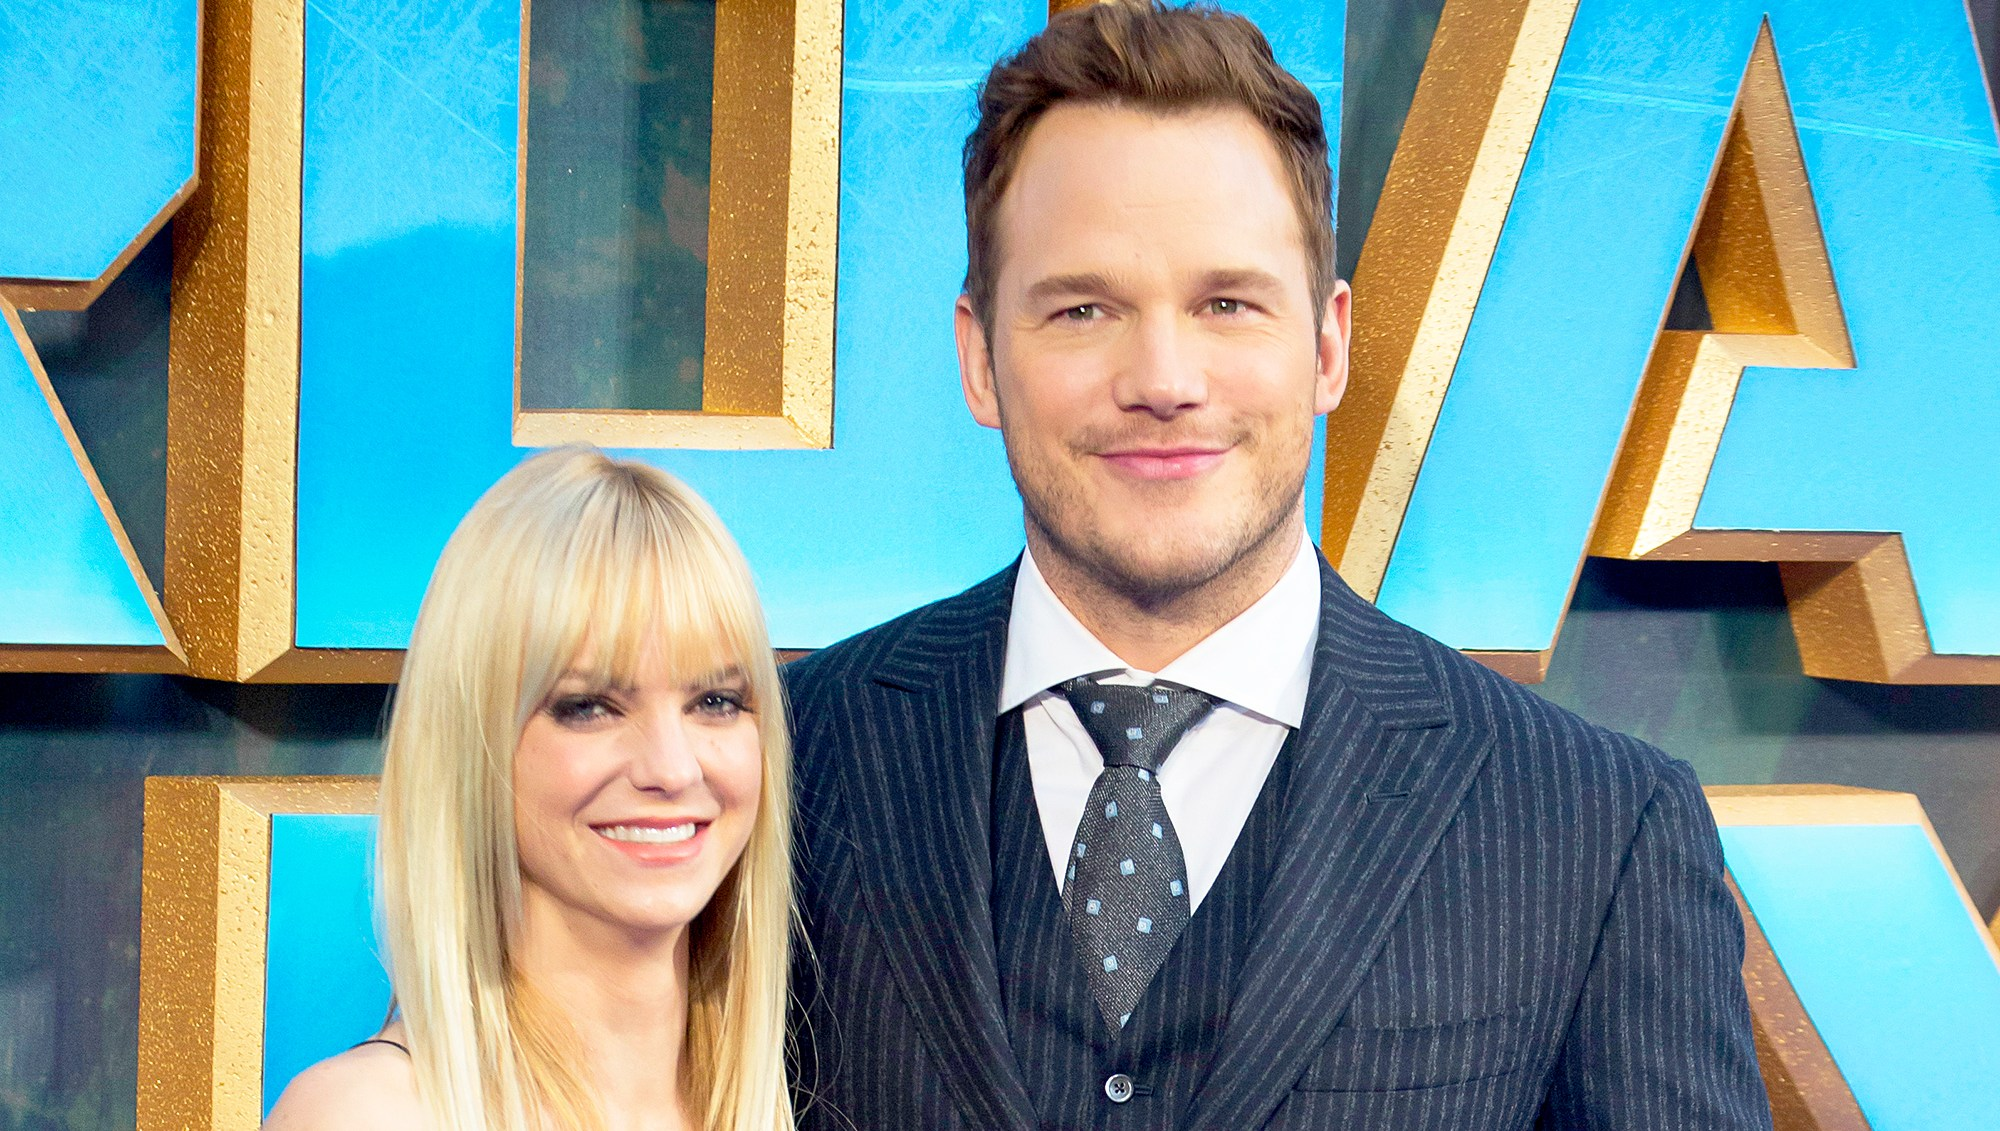 Anna Faris and Chris Pratt attend the European Gala Screening of 'Guardians of the Galaxy Vol. 2' at Eventim Apollo in London, United Kingdom.